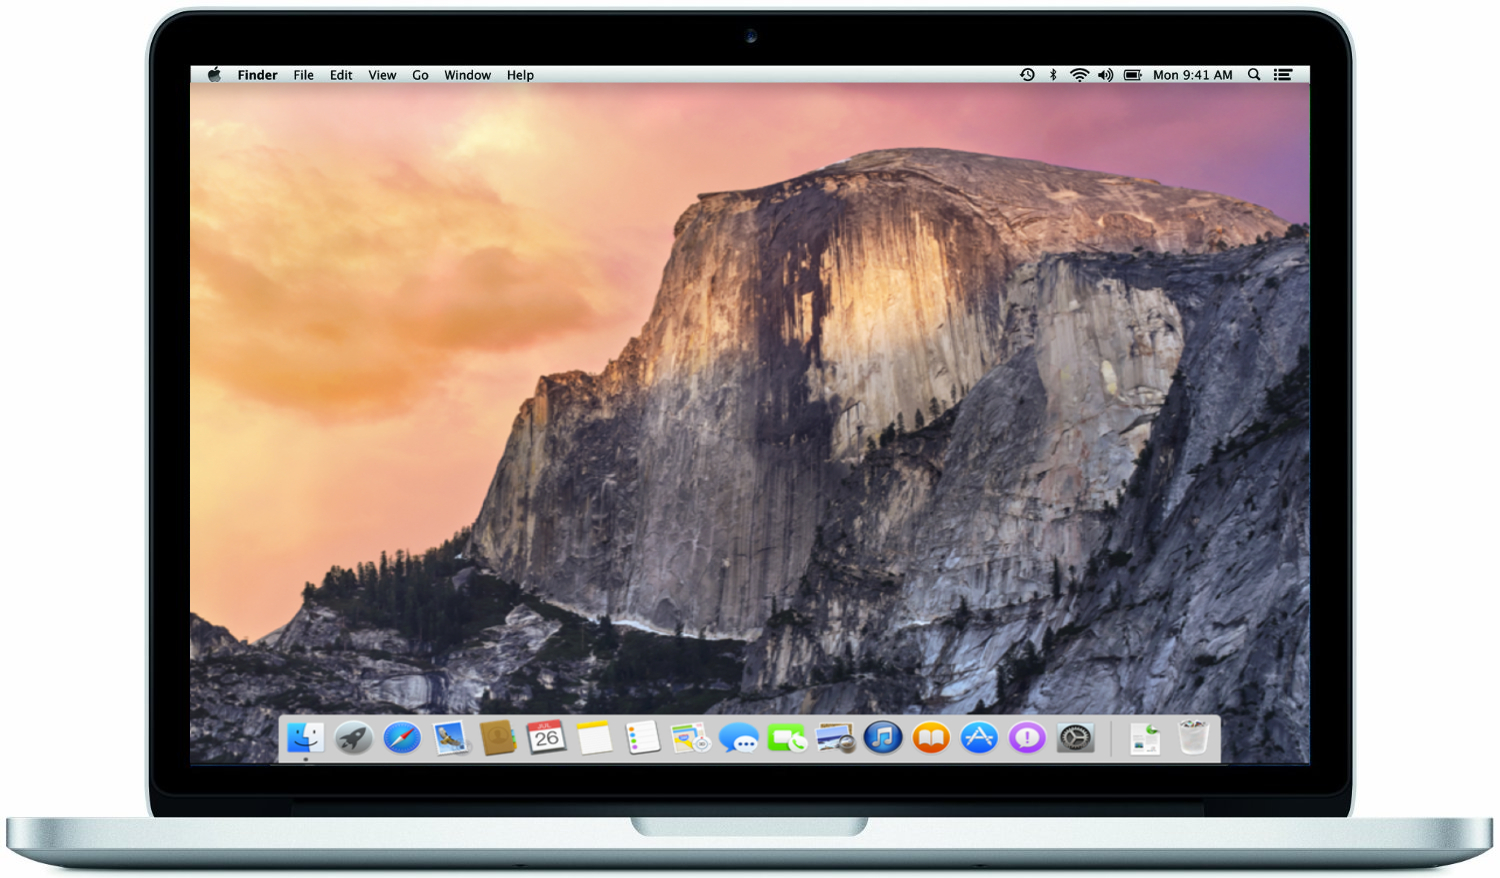 Apple MacBook Pro 13.3 (Retina Display) 2.7 GHz Intel Core i5 8 GB RAM 256 GB PCIe SSD [Early 2015]